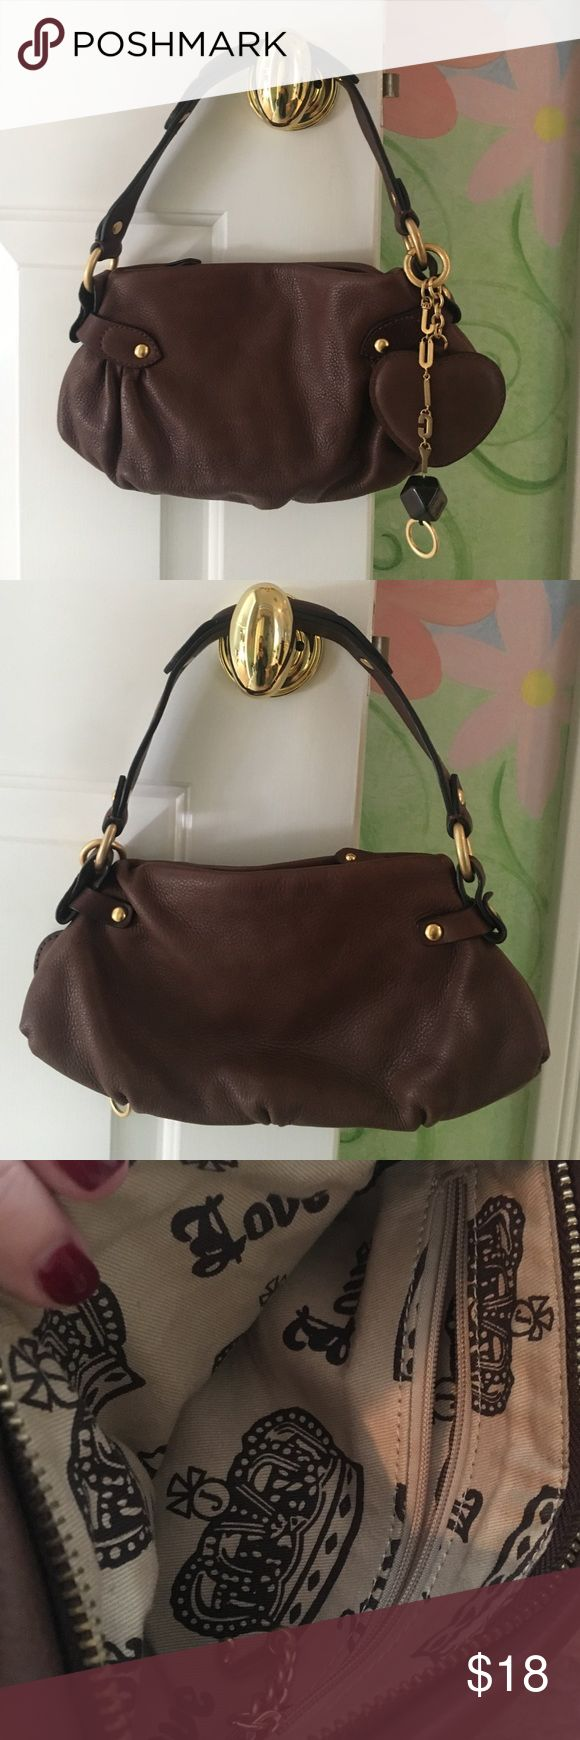 Juicy Couture mini shoulder bag Juicy Couture mini shoulder bag in brown leather with gold hardware and zip closure. 100% genuine leather! Used once! Juicy Couture Bags Mini Bags